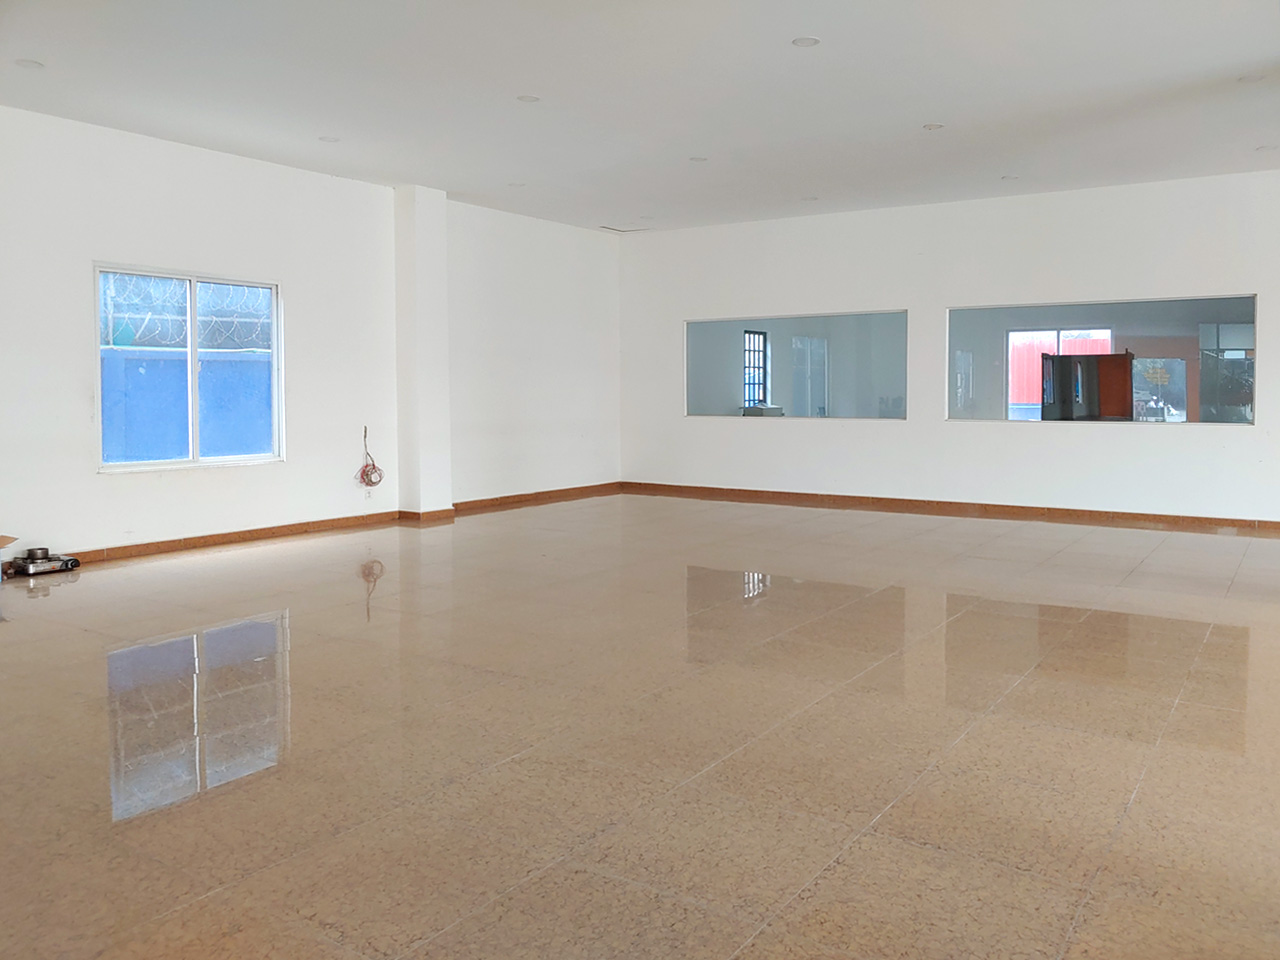 430 Sqm retail/business space for rent near IU